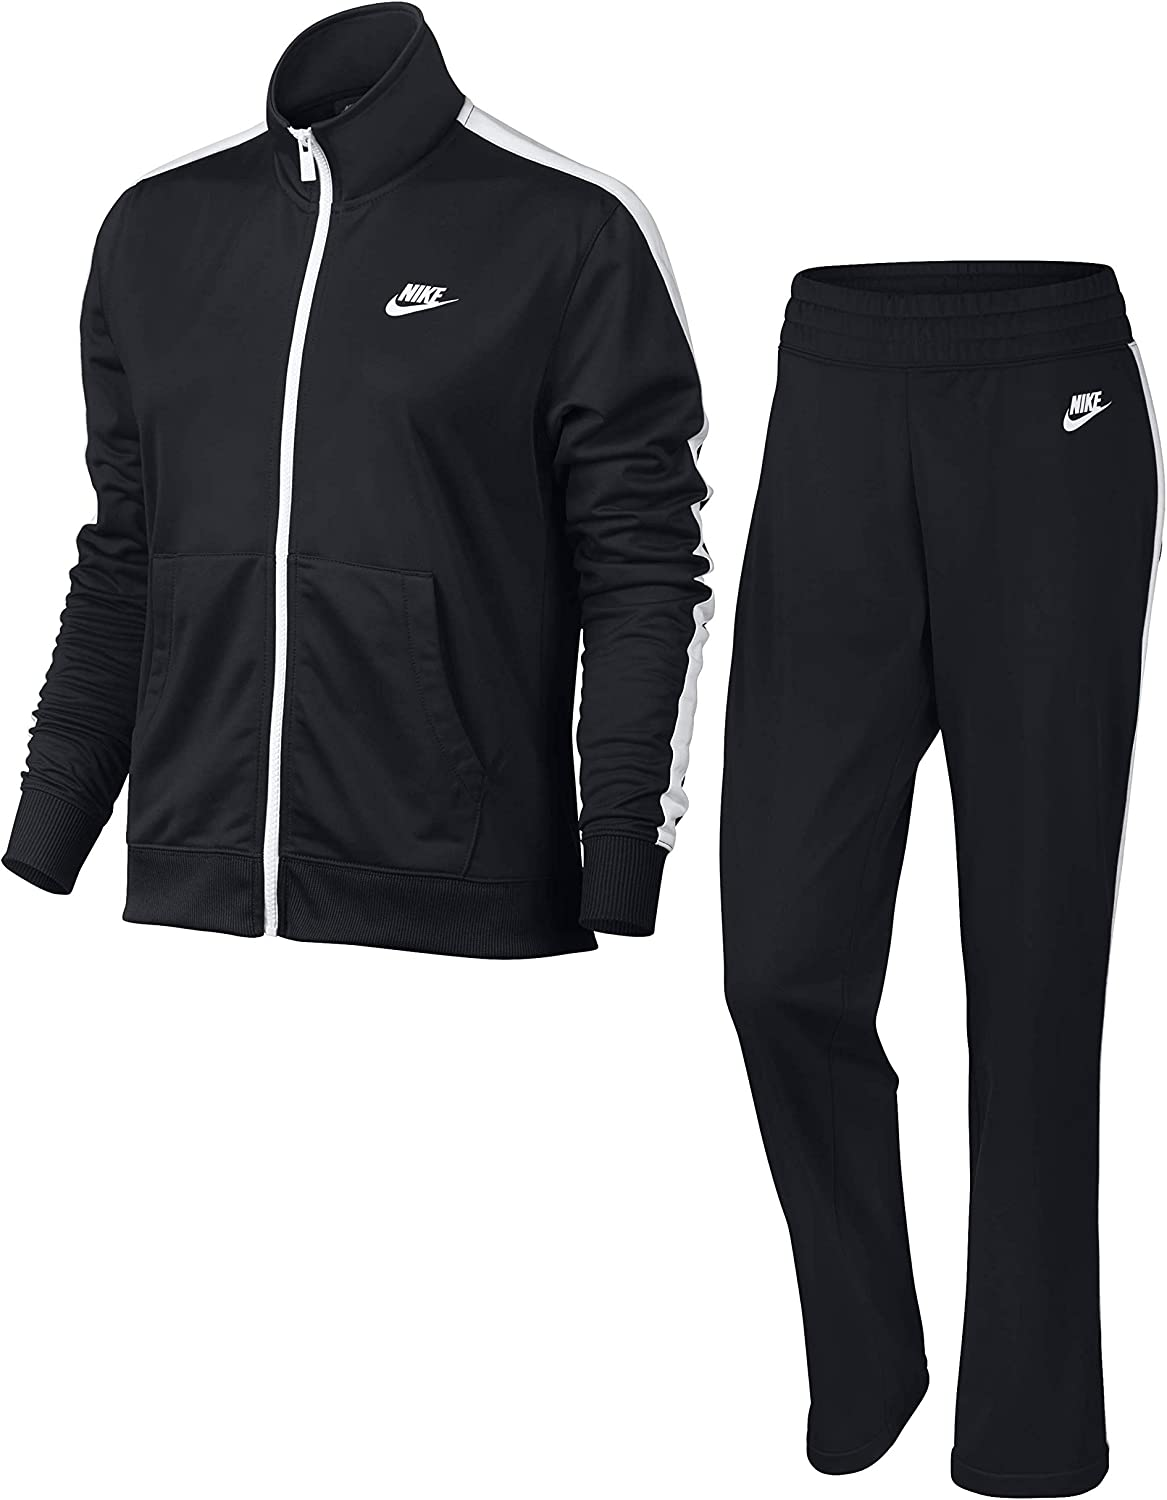 Nike W NSW TRK Suit PK Oh Chándal, Mujer: Amazon.es: Ropa y accesorios